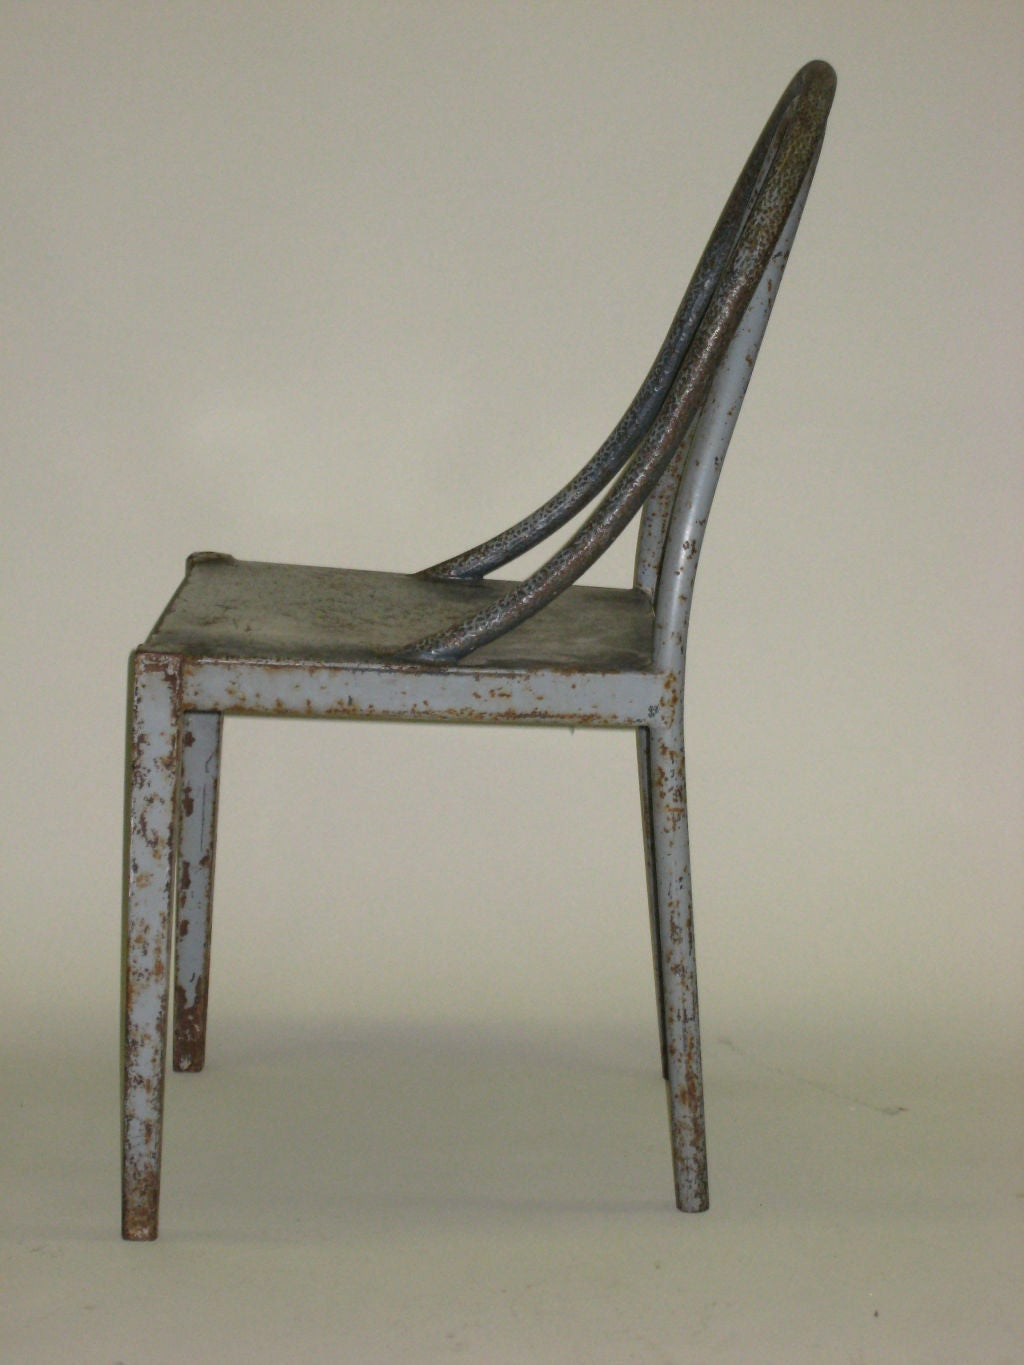 Mid-20th Century Important Modernist Prototype Desk & Chair by U.A.M. Attributed to Le Corbusier For Sale